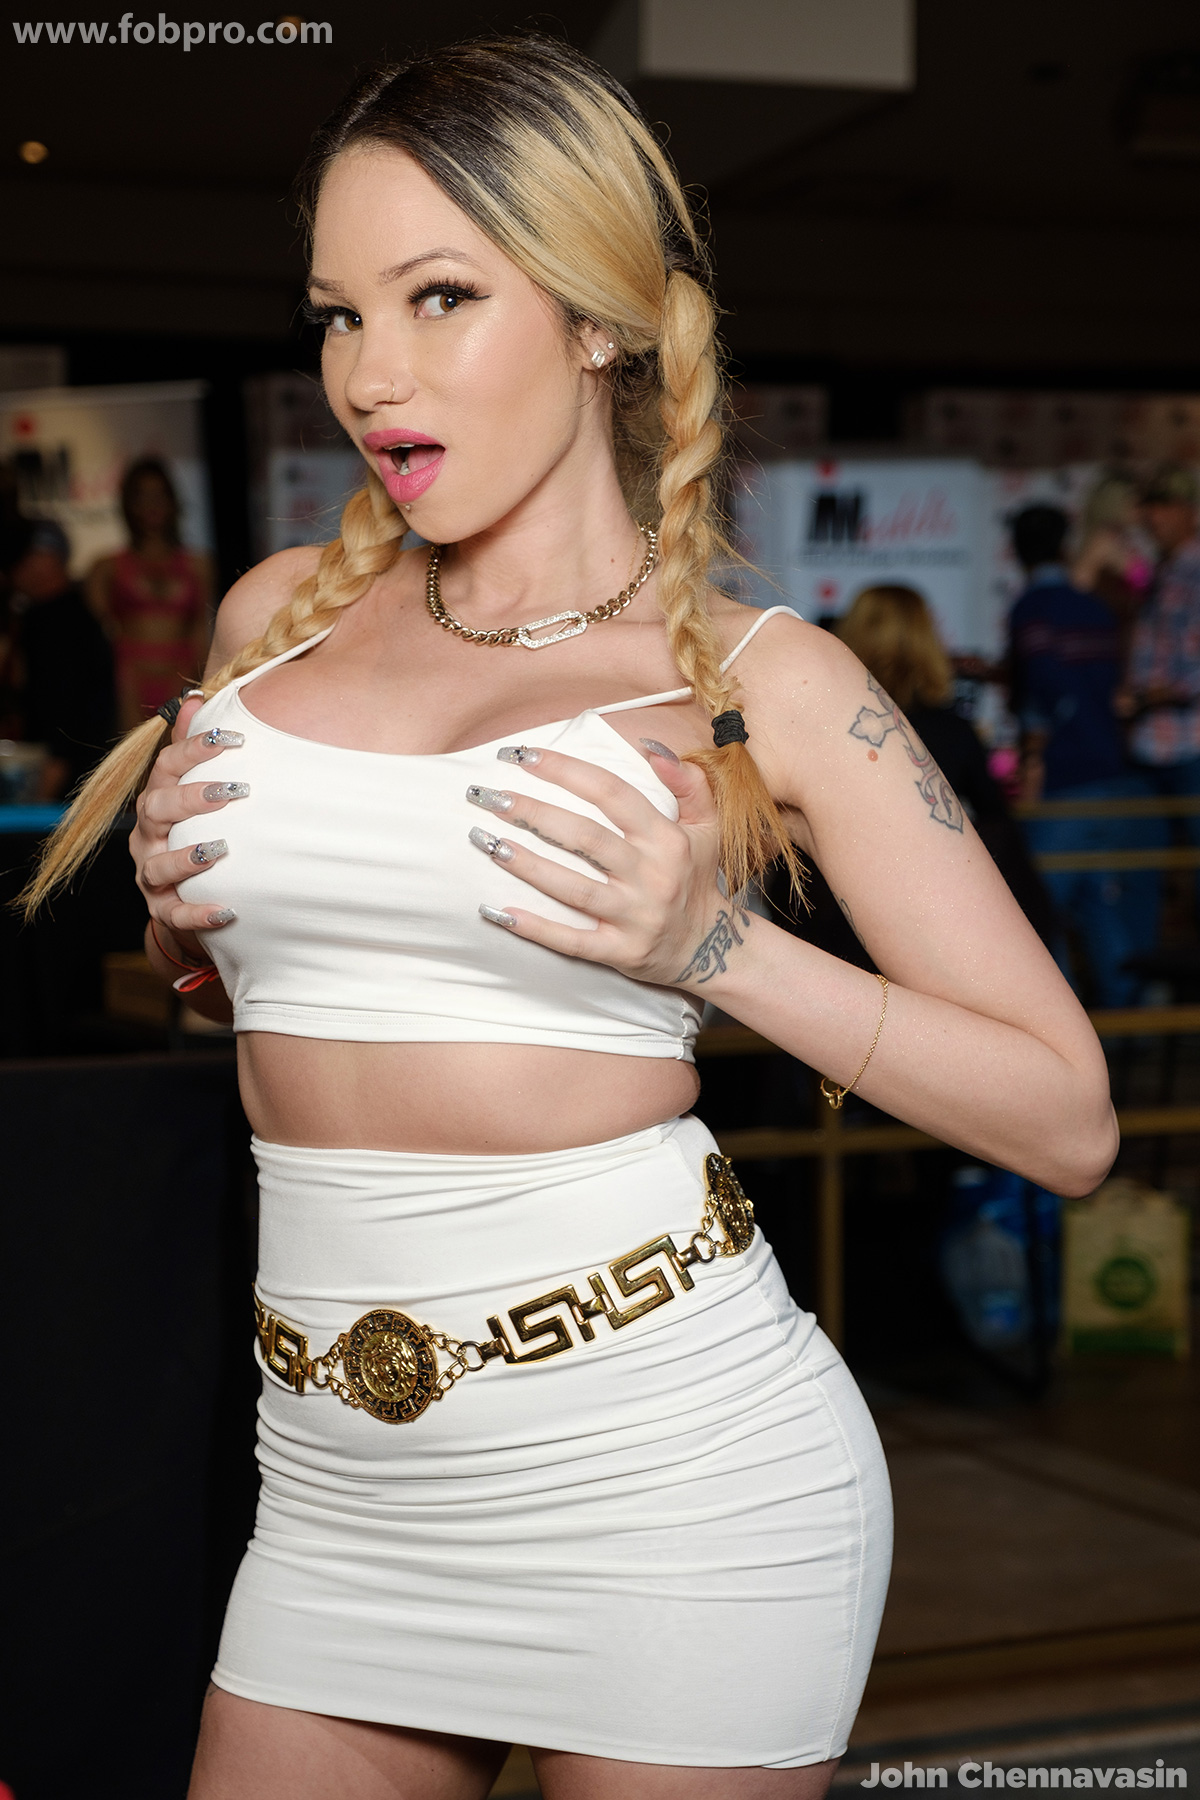 AVN Adult Entertainment Expo 2019 Day 1 (Page 26 of 32